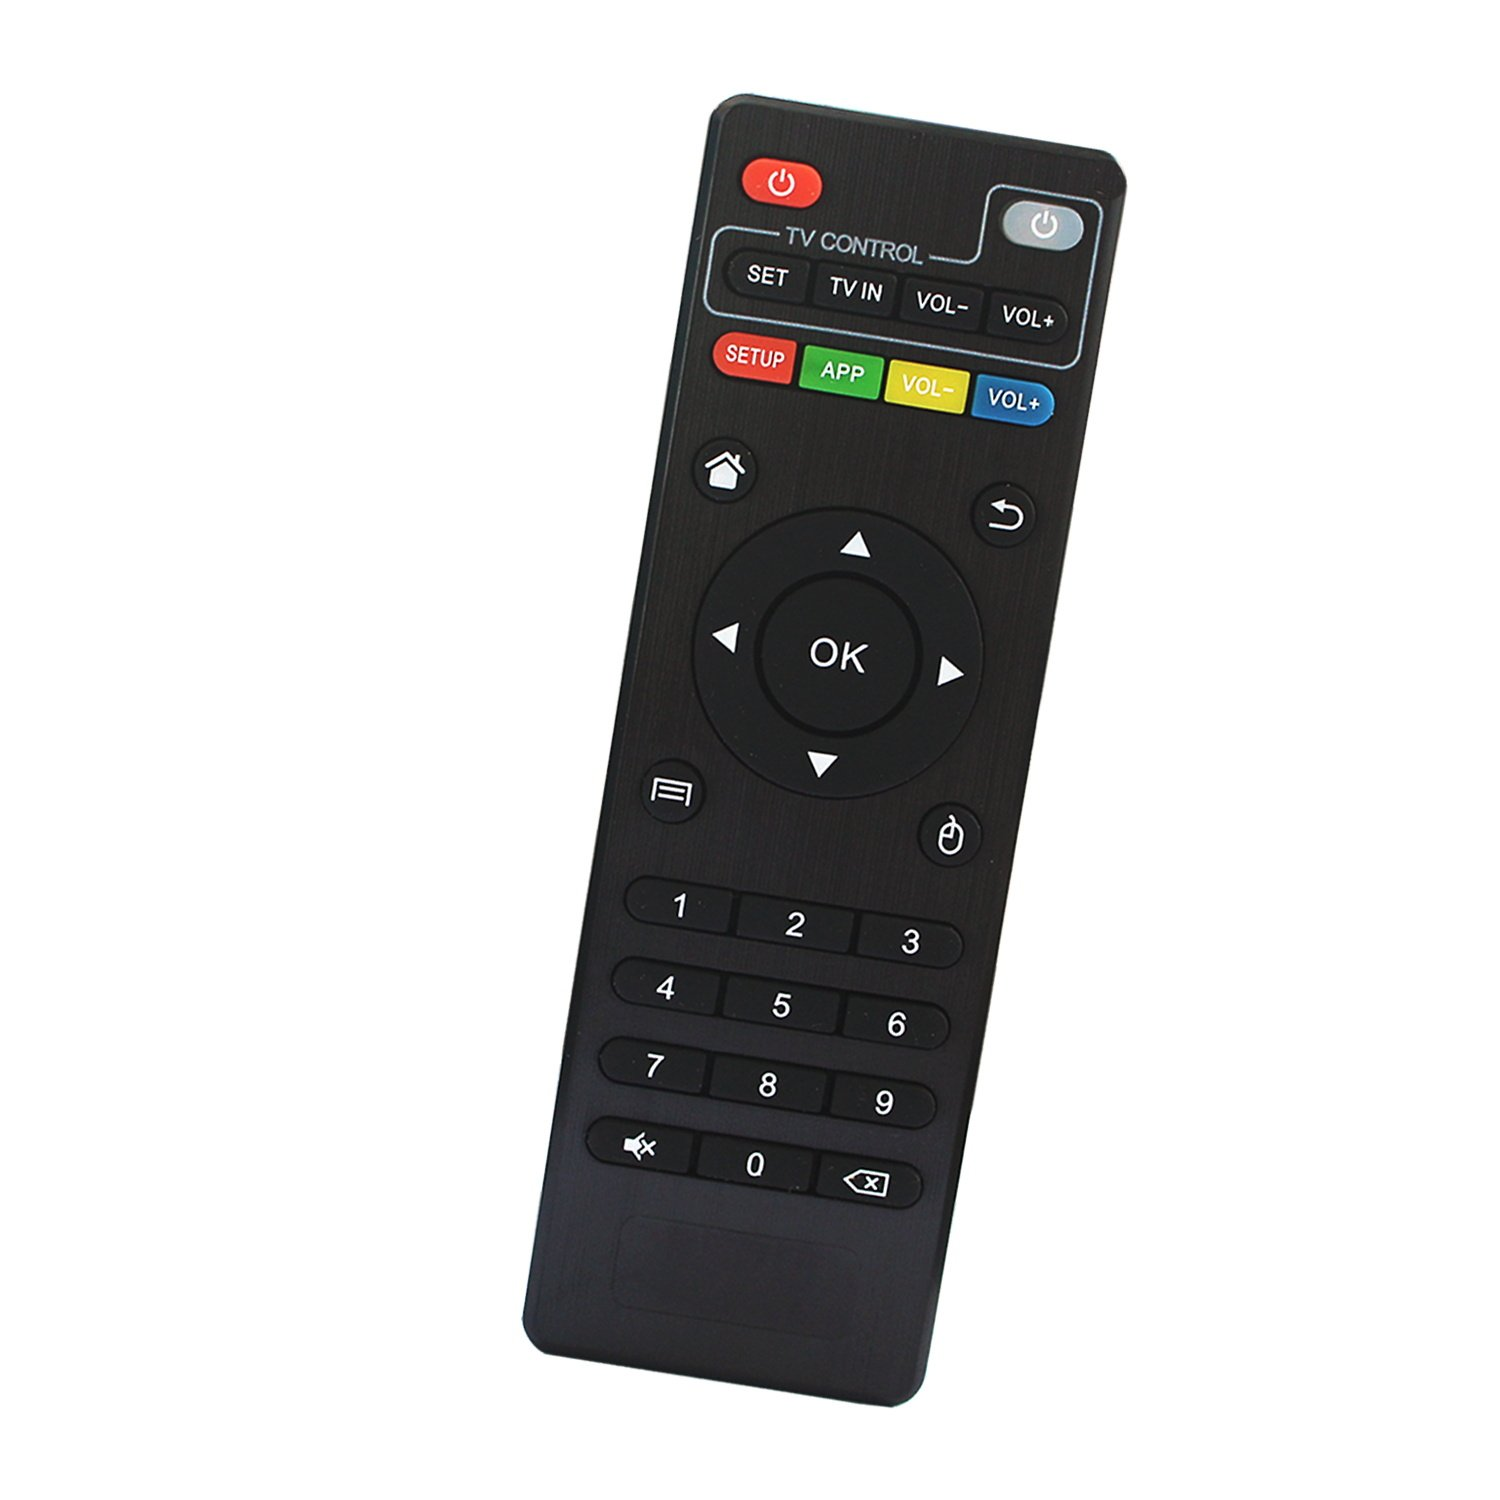 Tv Box Android Ranking Hisense Tv Red Light Wont Turn On Vu 32 Hd Smart Led Tv 32d6475 Make Pictures From Old Projector Slides: Mxq Remote Pair - TV & Video